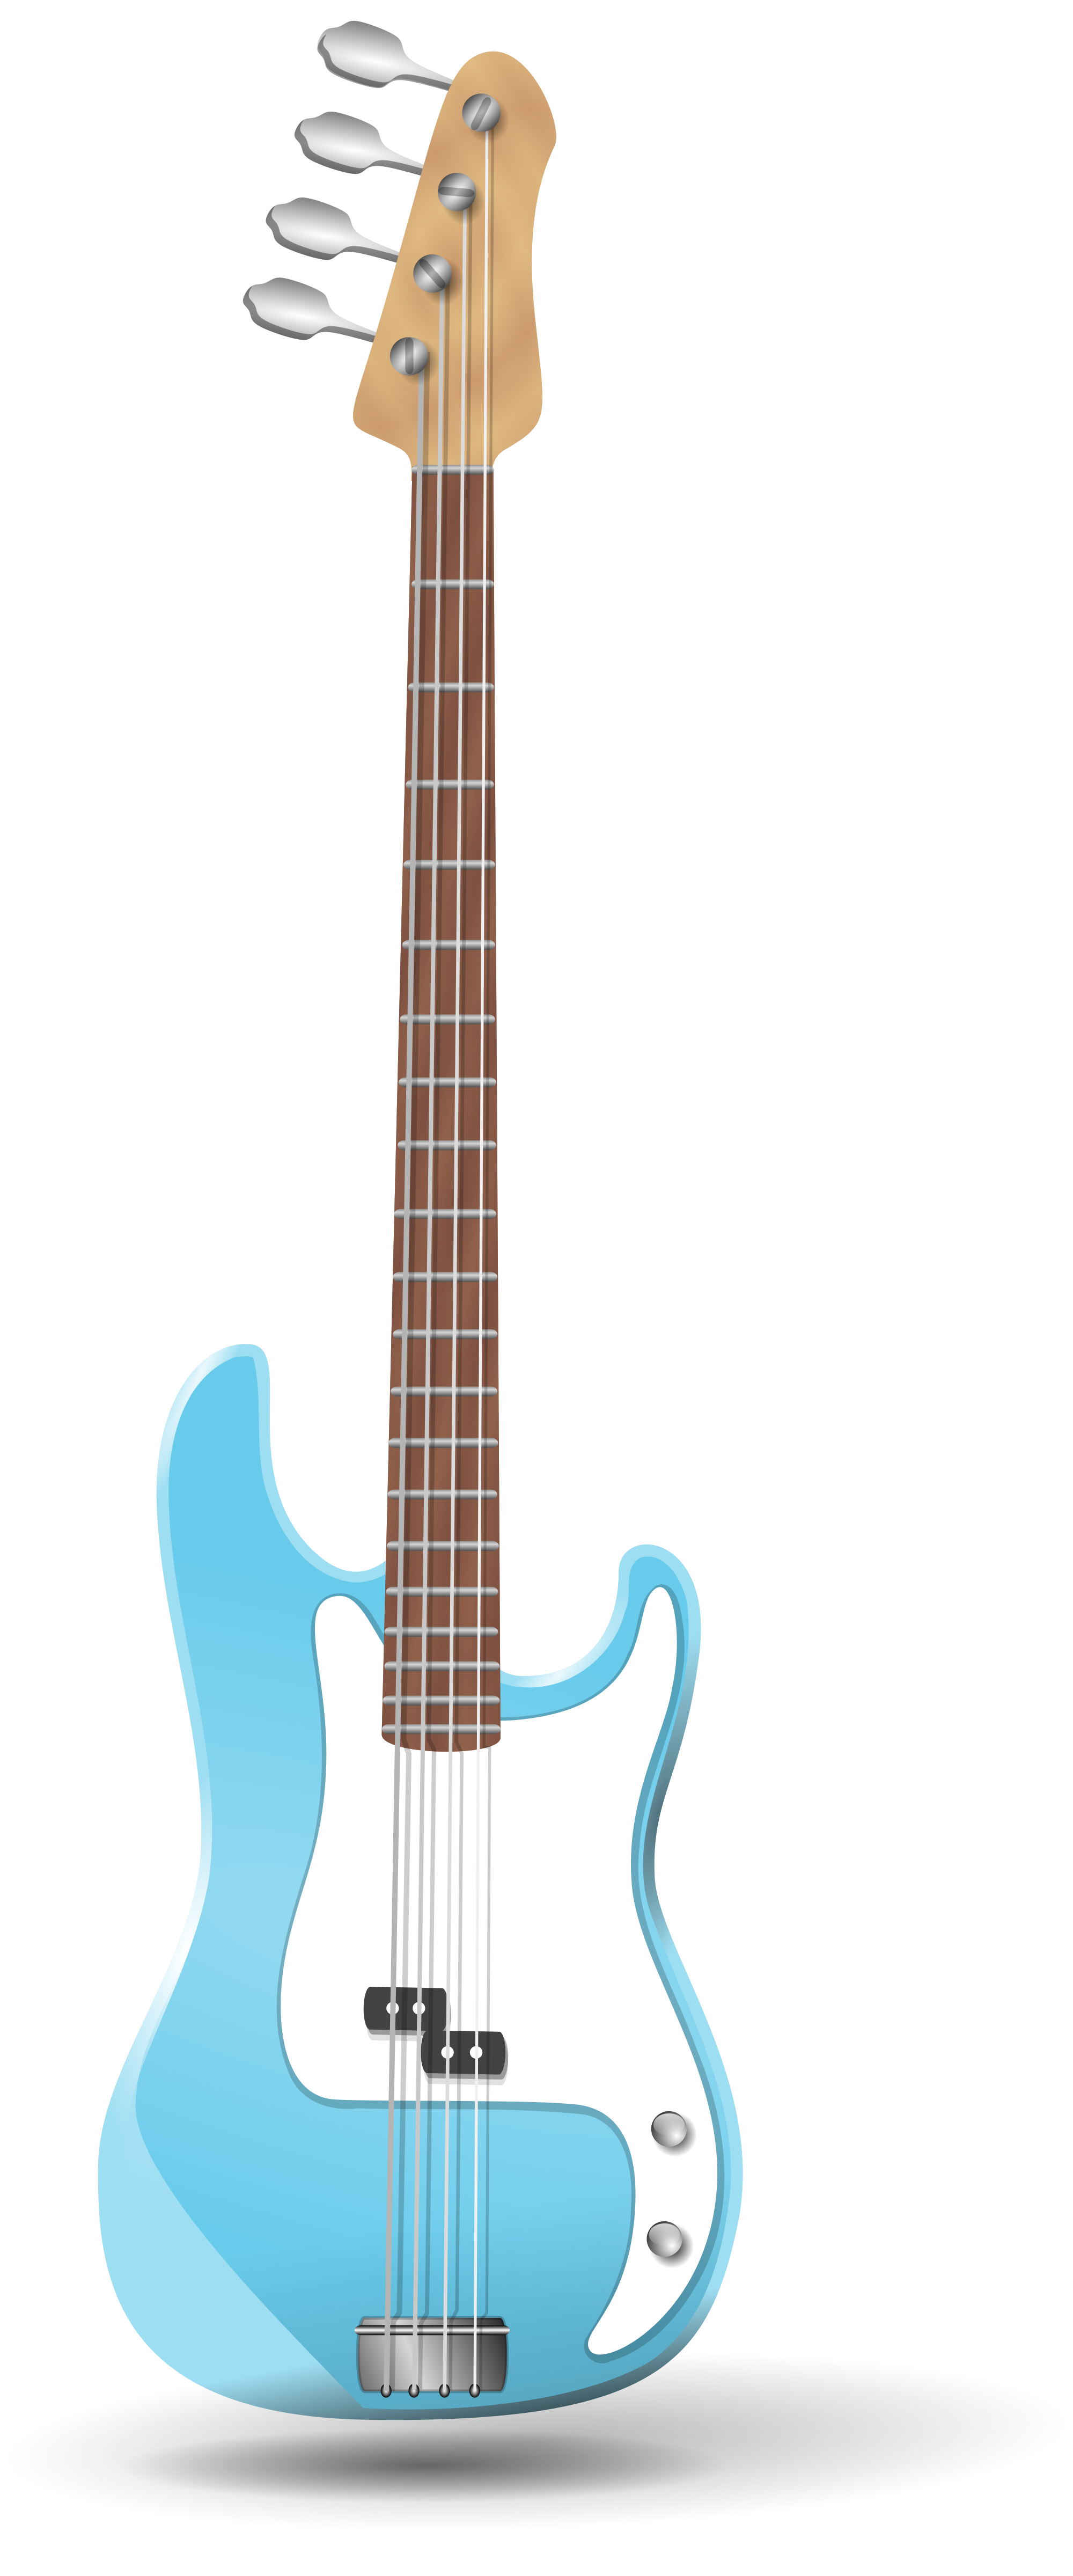 Bass clipart svg. File guitar wikimedia commons